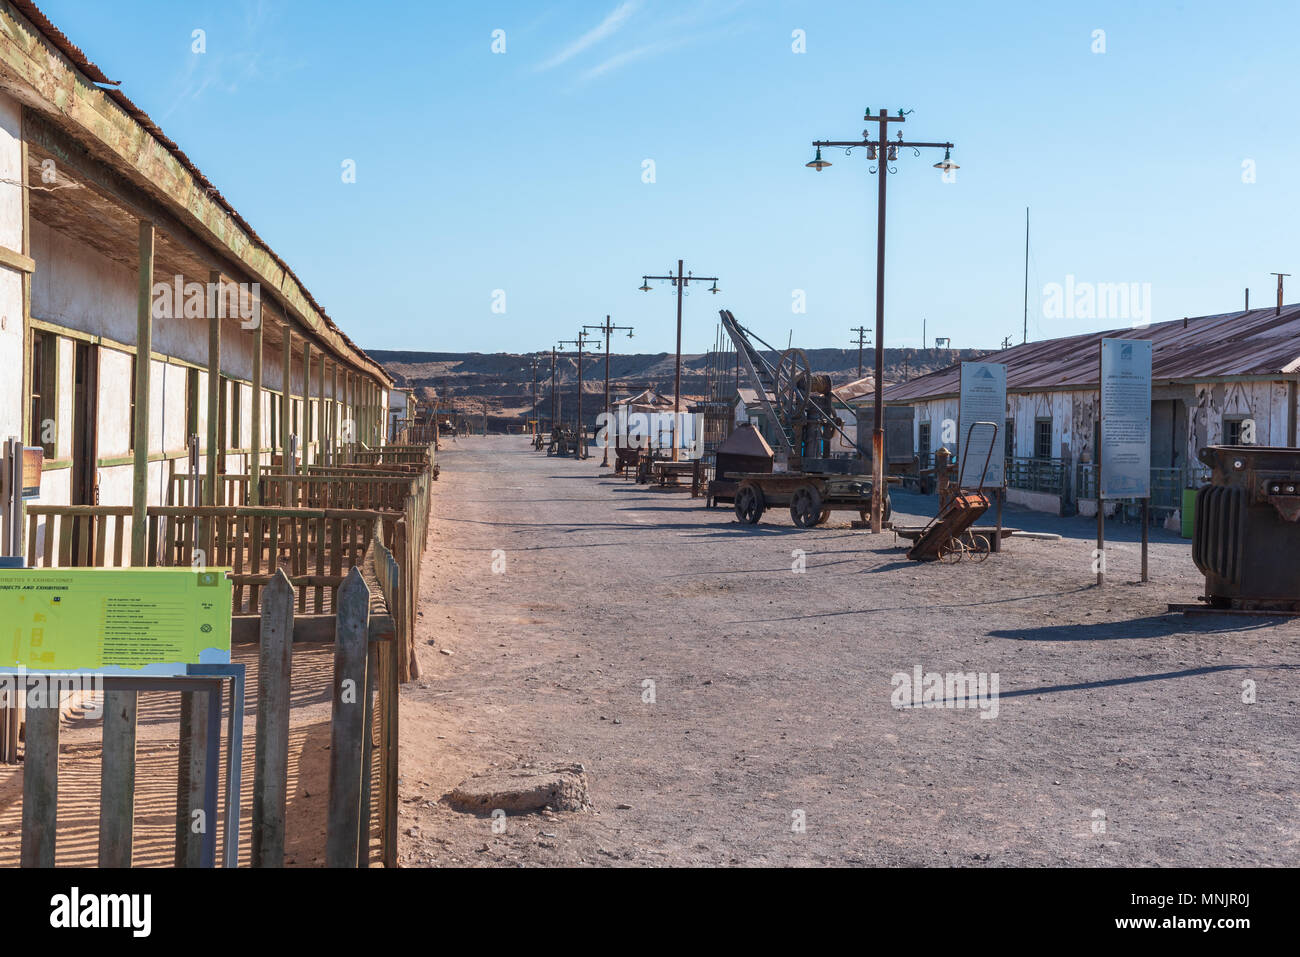 Humberstone, Chile--April 9, 2018. Humberstone, Chile, an abandoned mining town, now preserved as a museum ghost town. - Stock Image